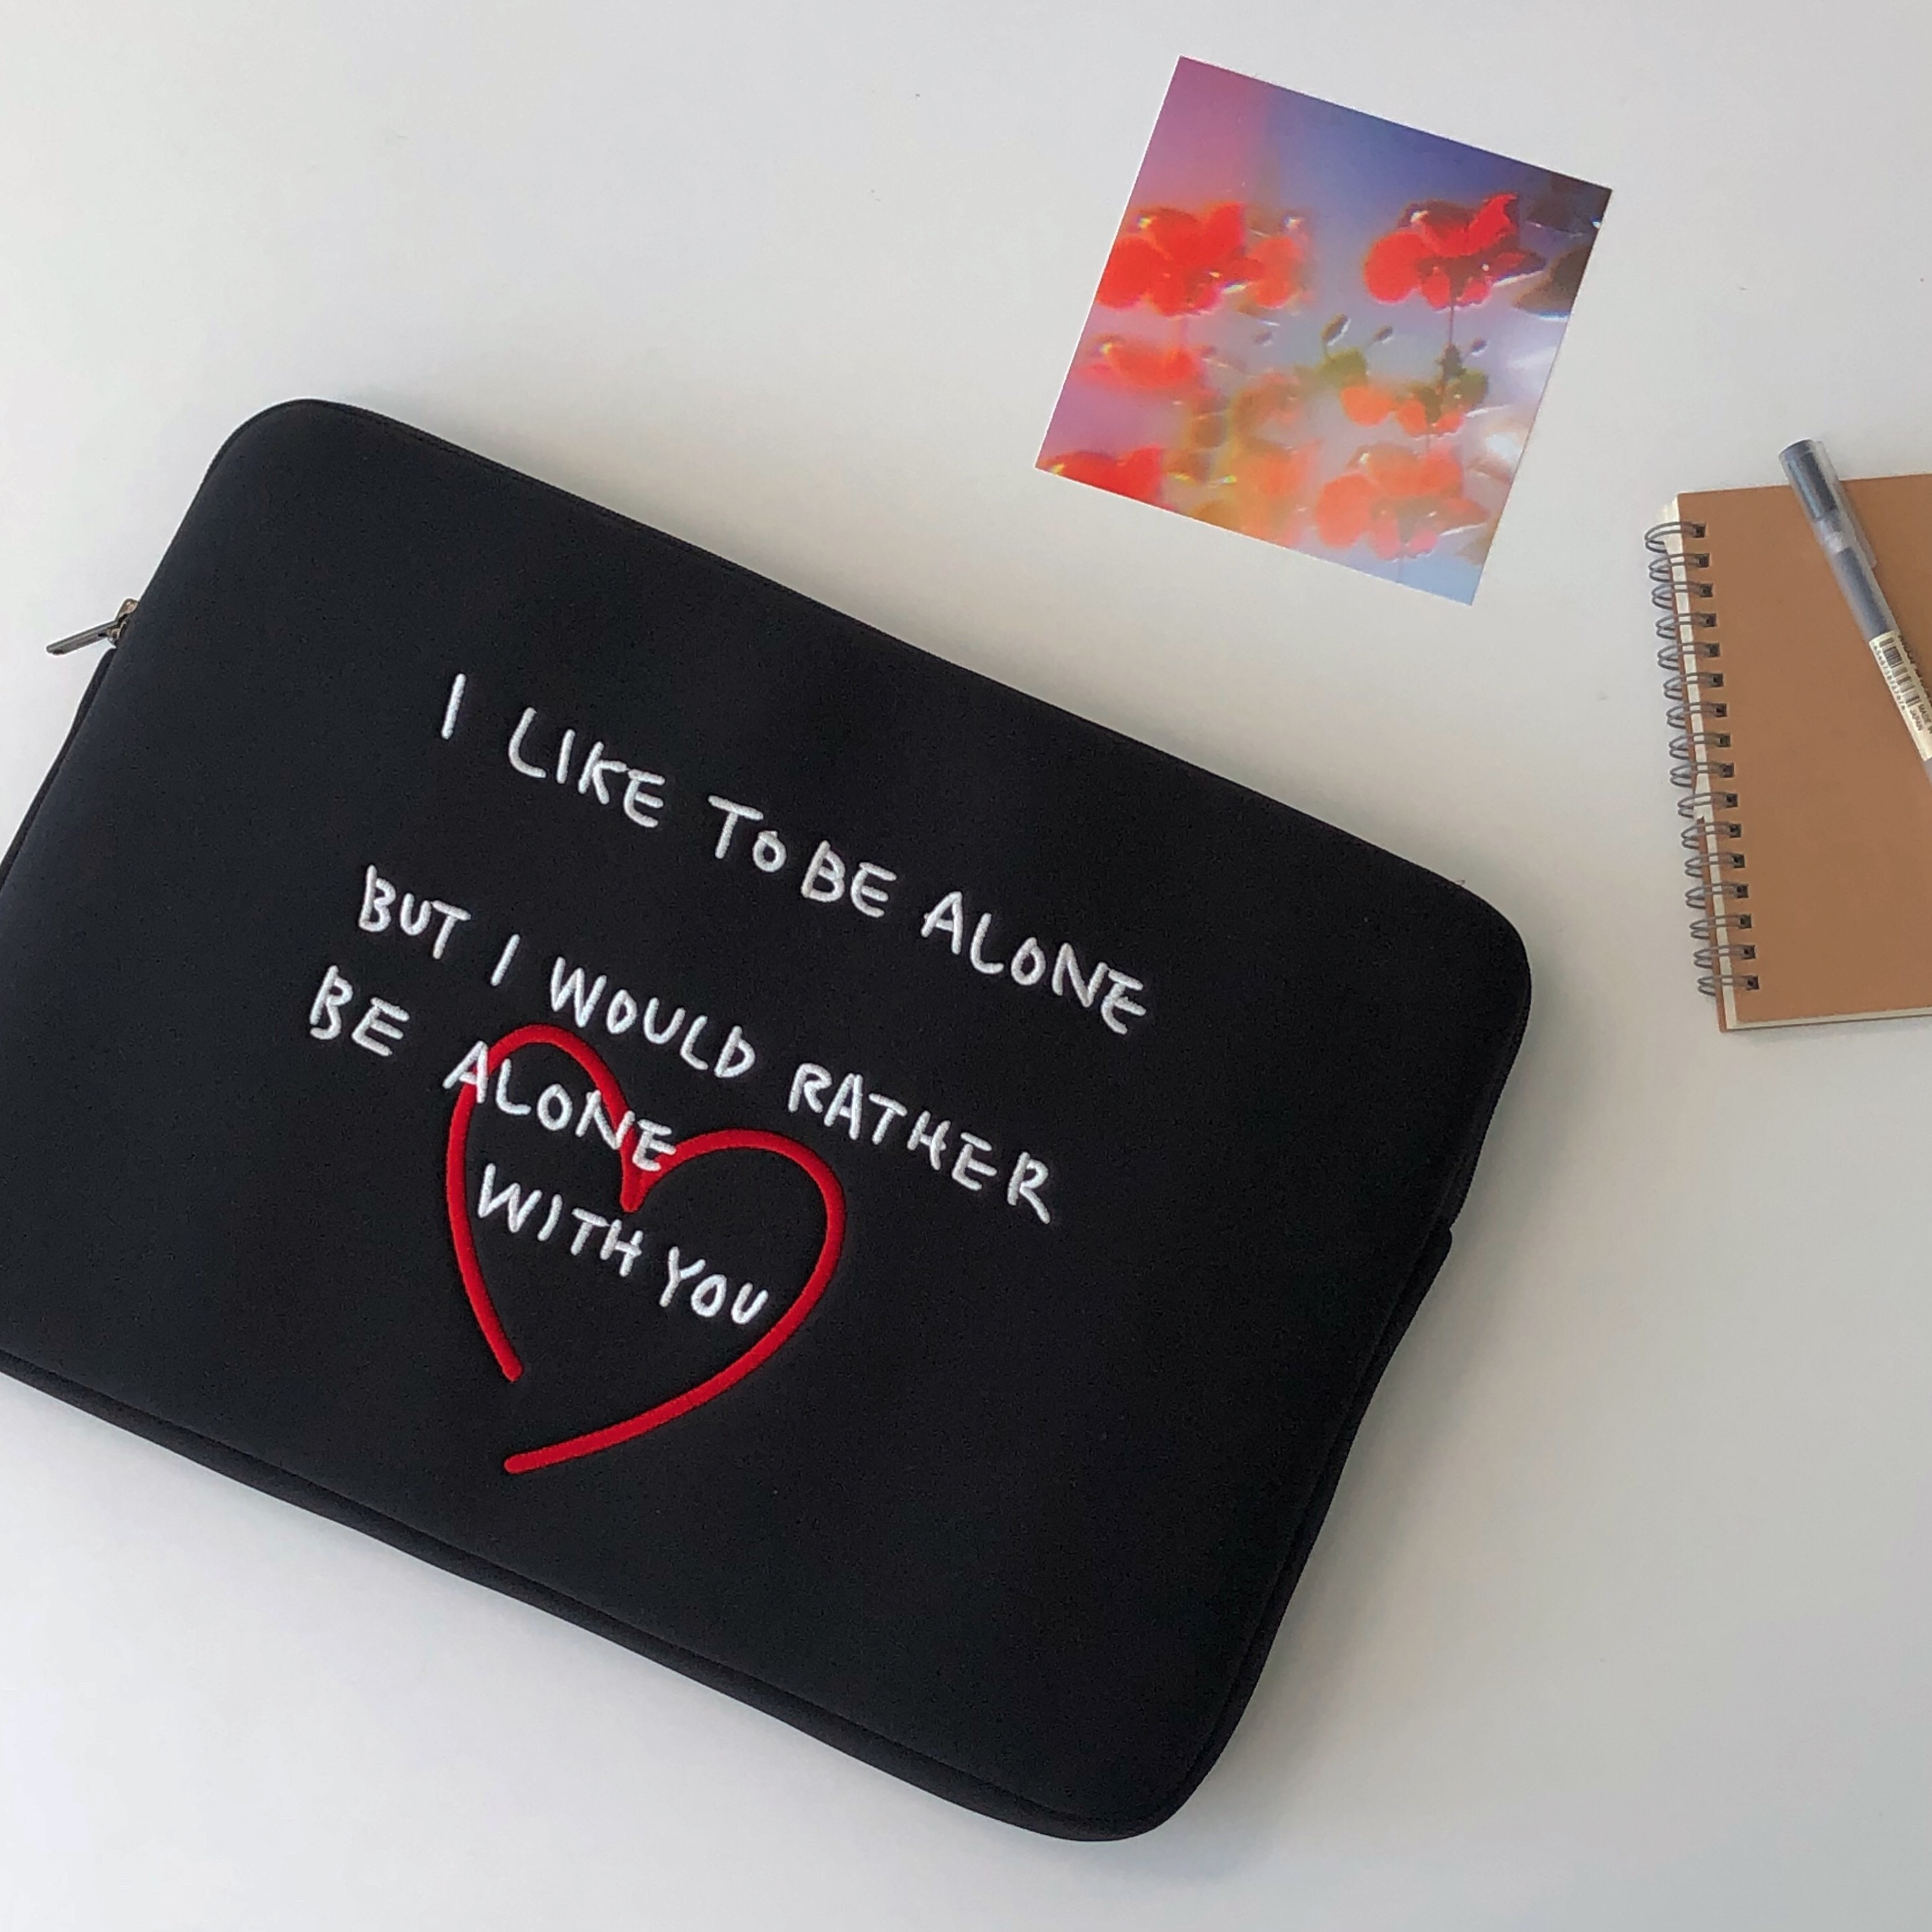 Heart laptop pouch (2차 재입고)